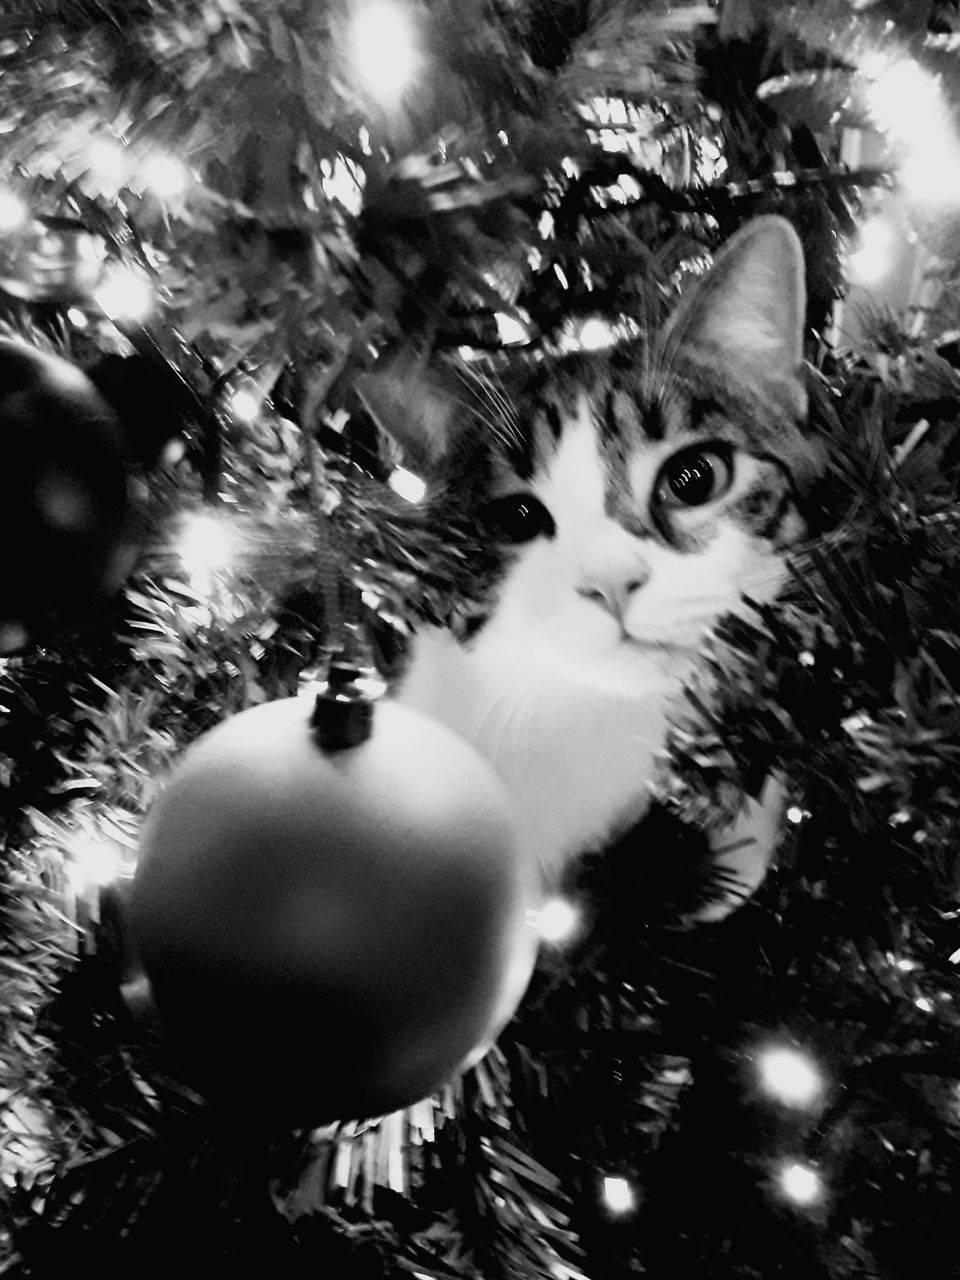 christmas, christmas ornament, domestic cat, christmas decoration, domestic animals, christmas tree, celebration, pets, tree, indoors, one animal, feline, mammal, no people, portrait, animal themes, close-up, day